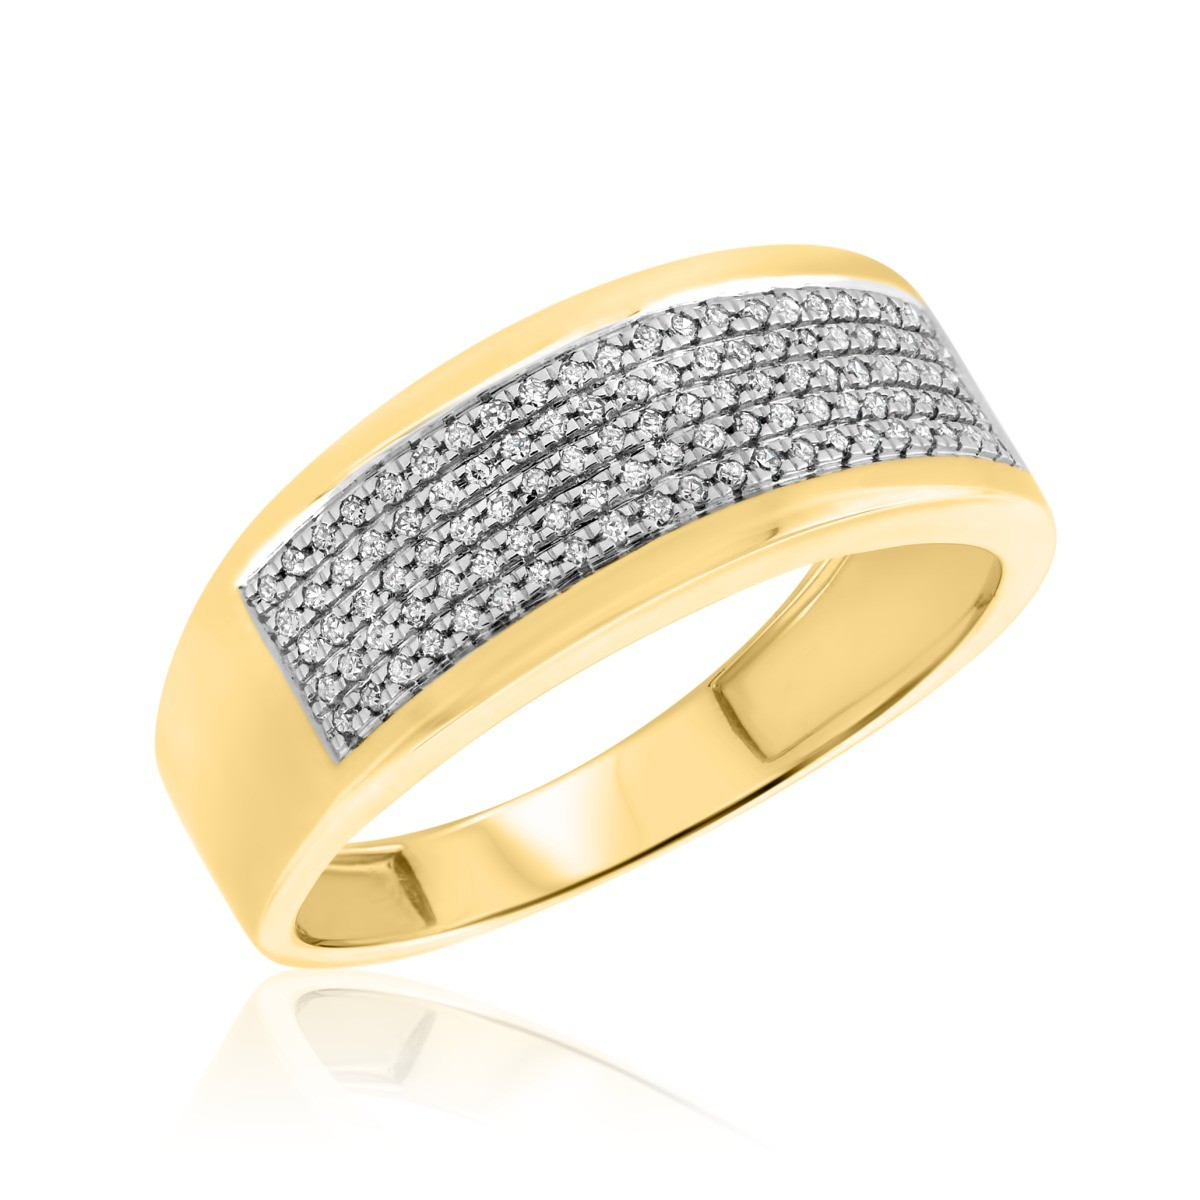 1/4 Carat T.W. Diamond Mens Wedding Band 10K Yellow Gold